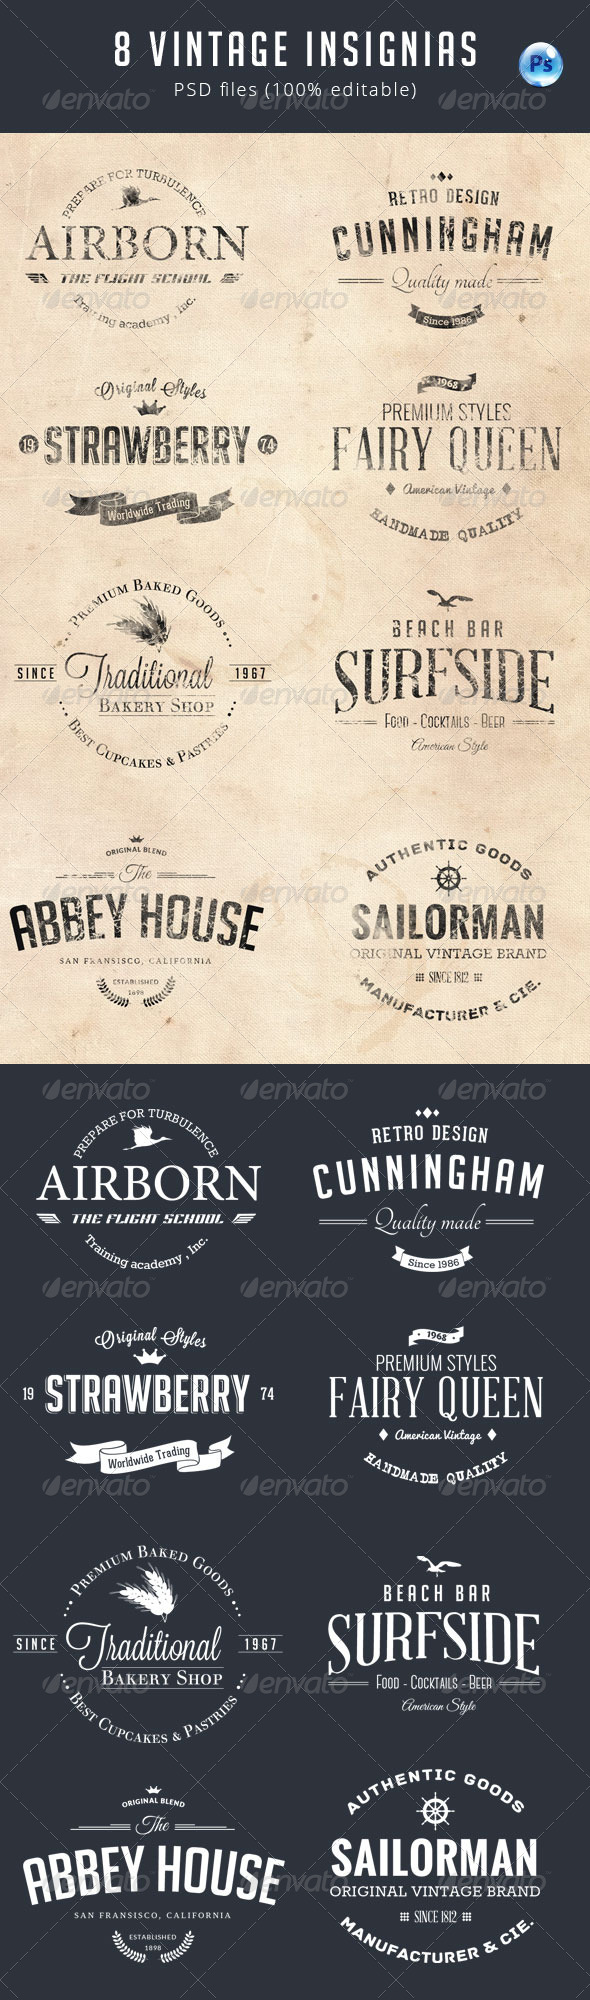 GraphicRiver 8 Vintage Insignias 8076087